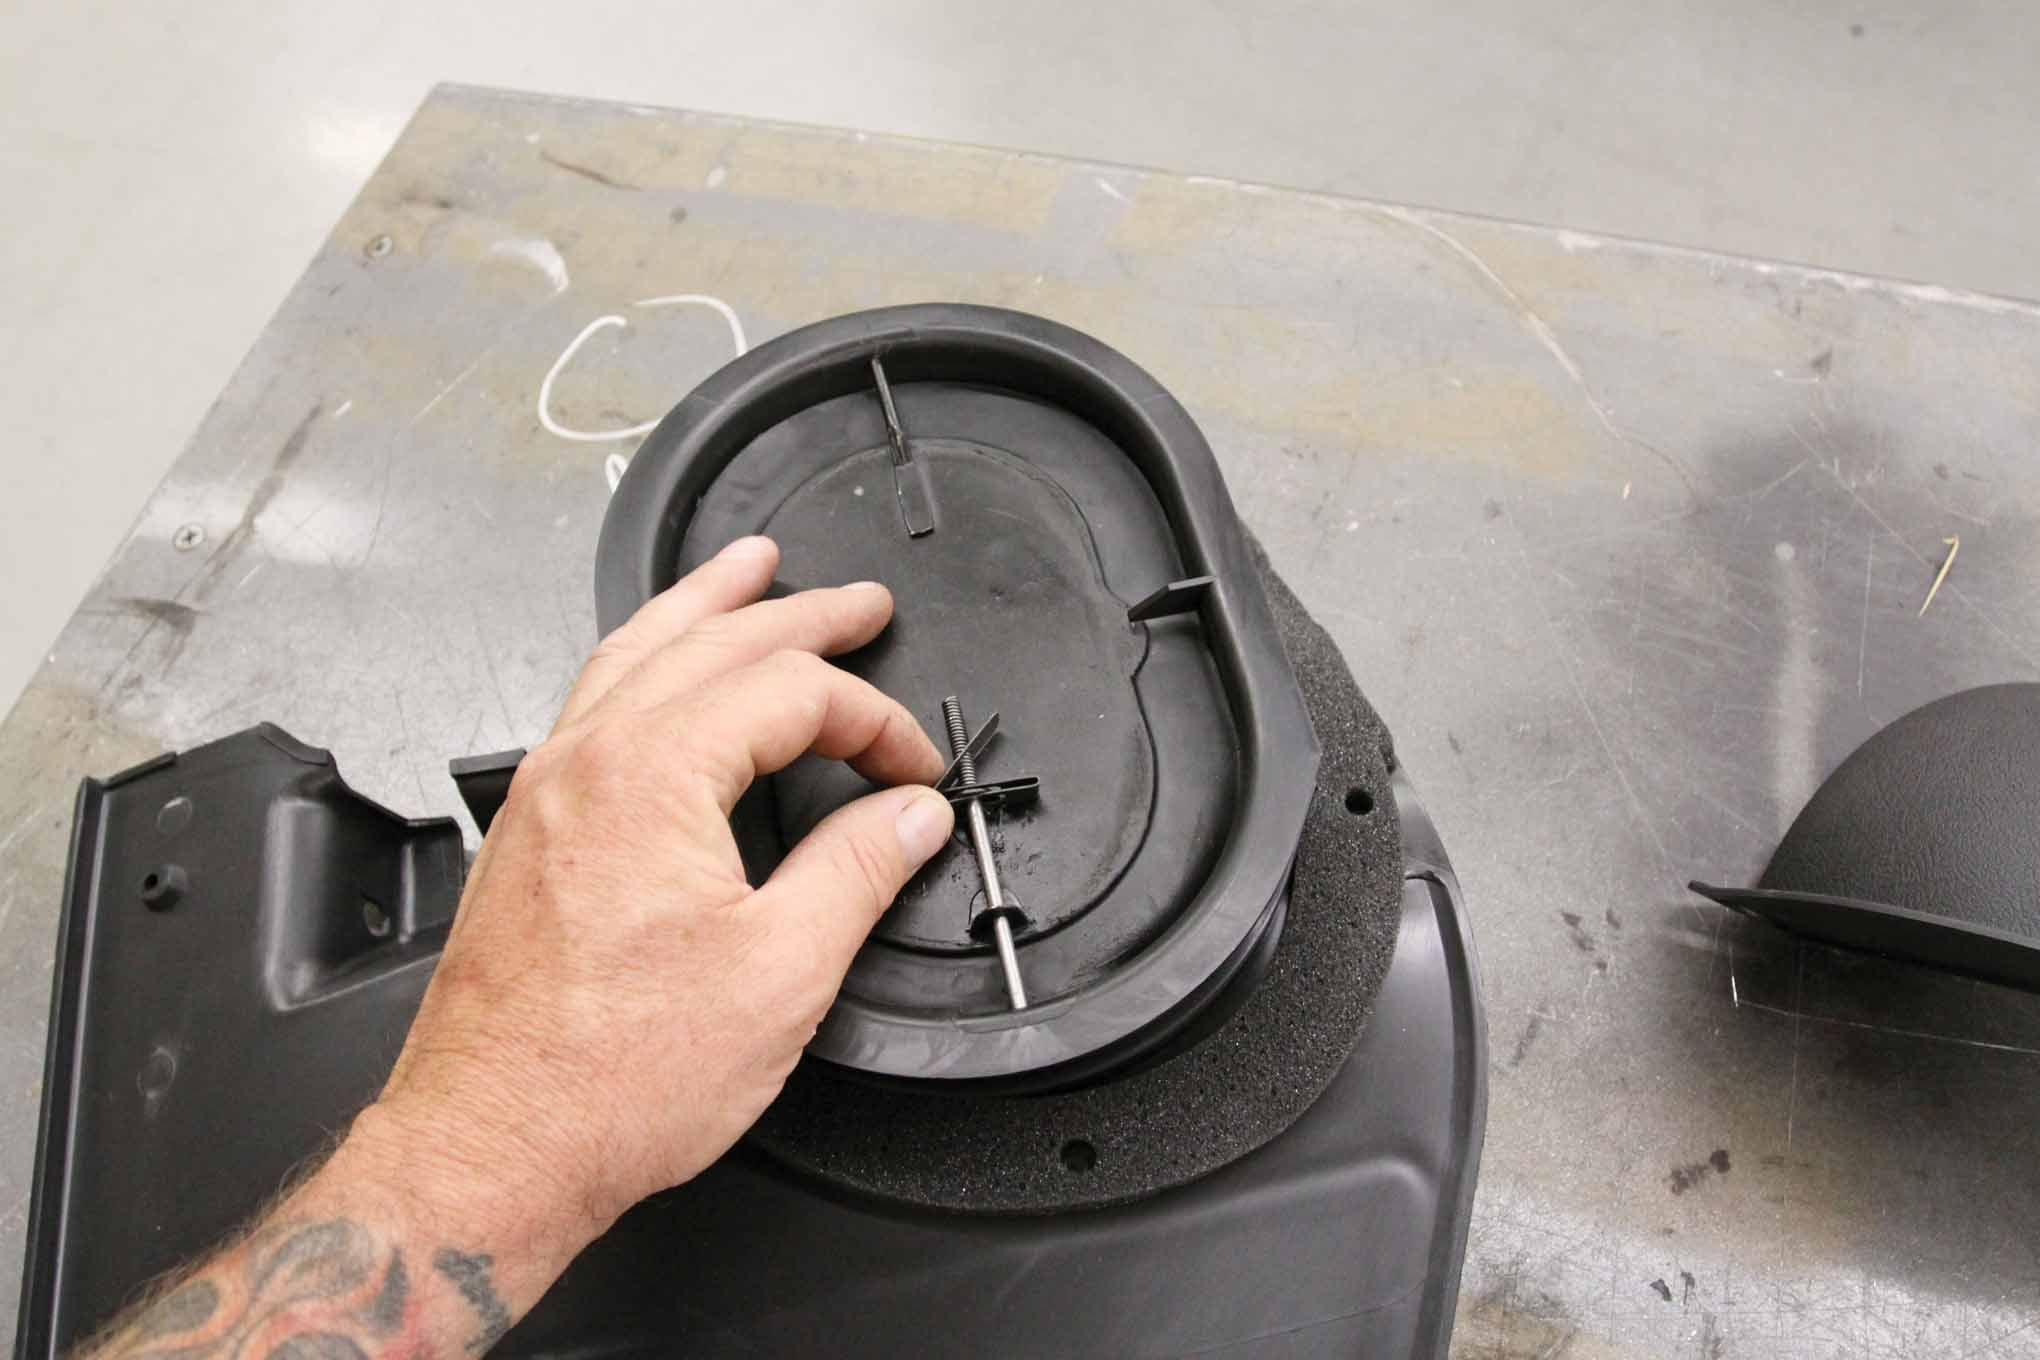 Connect the air vent actuator to the air vent valve. Make